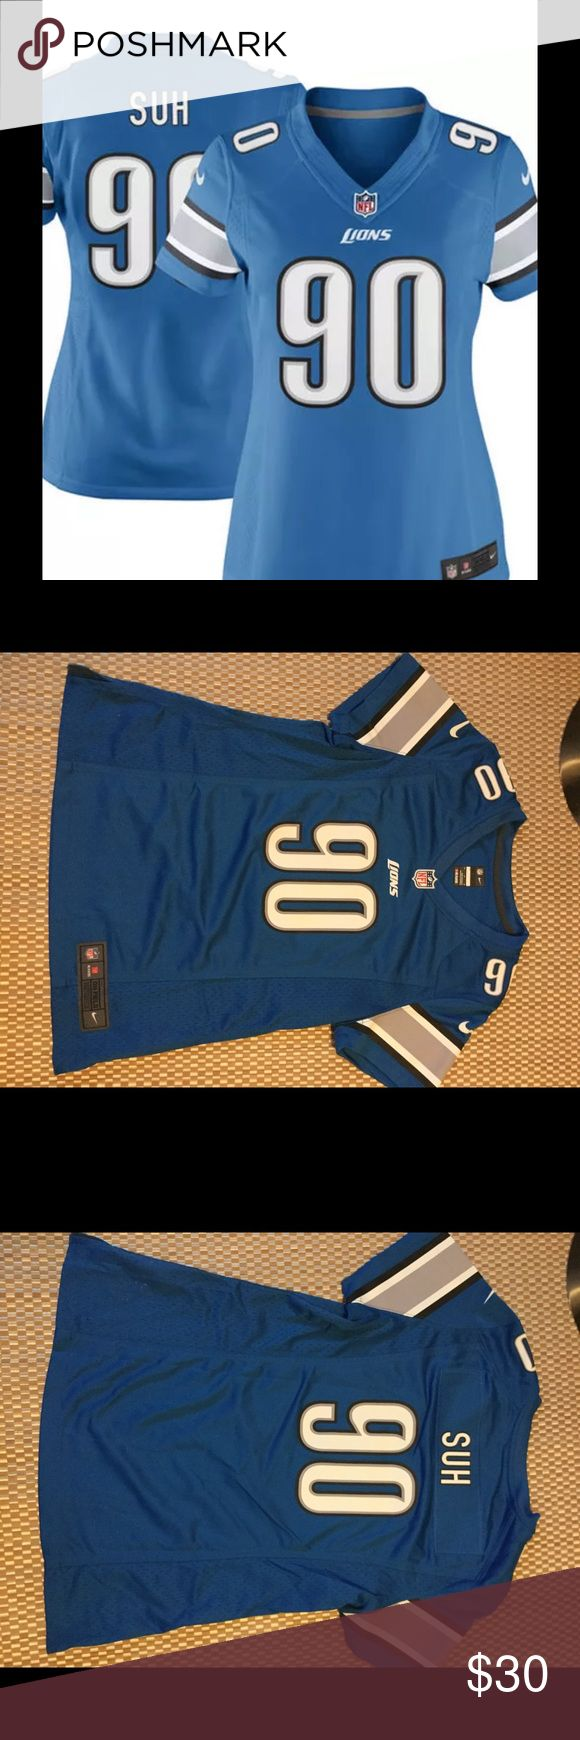 Nike NFL JERSEY Detroit Lions Ndamukong Suh NFL JERSEY BLUE ON FIELD JERSEY MEDIUM.. NEW WITHOUT TAG NFL Tops Tees - Short Sleeve